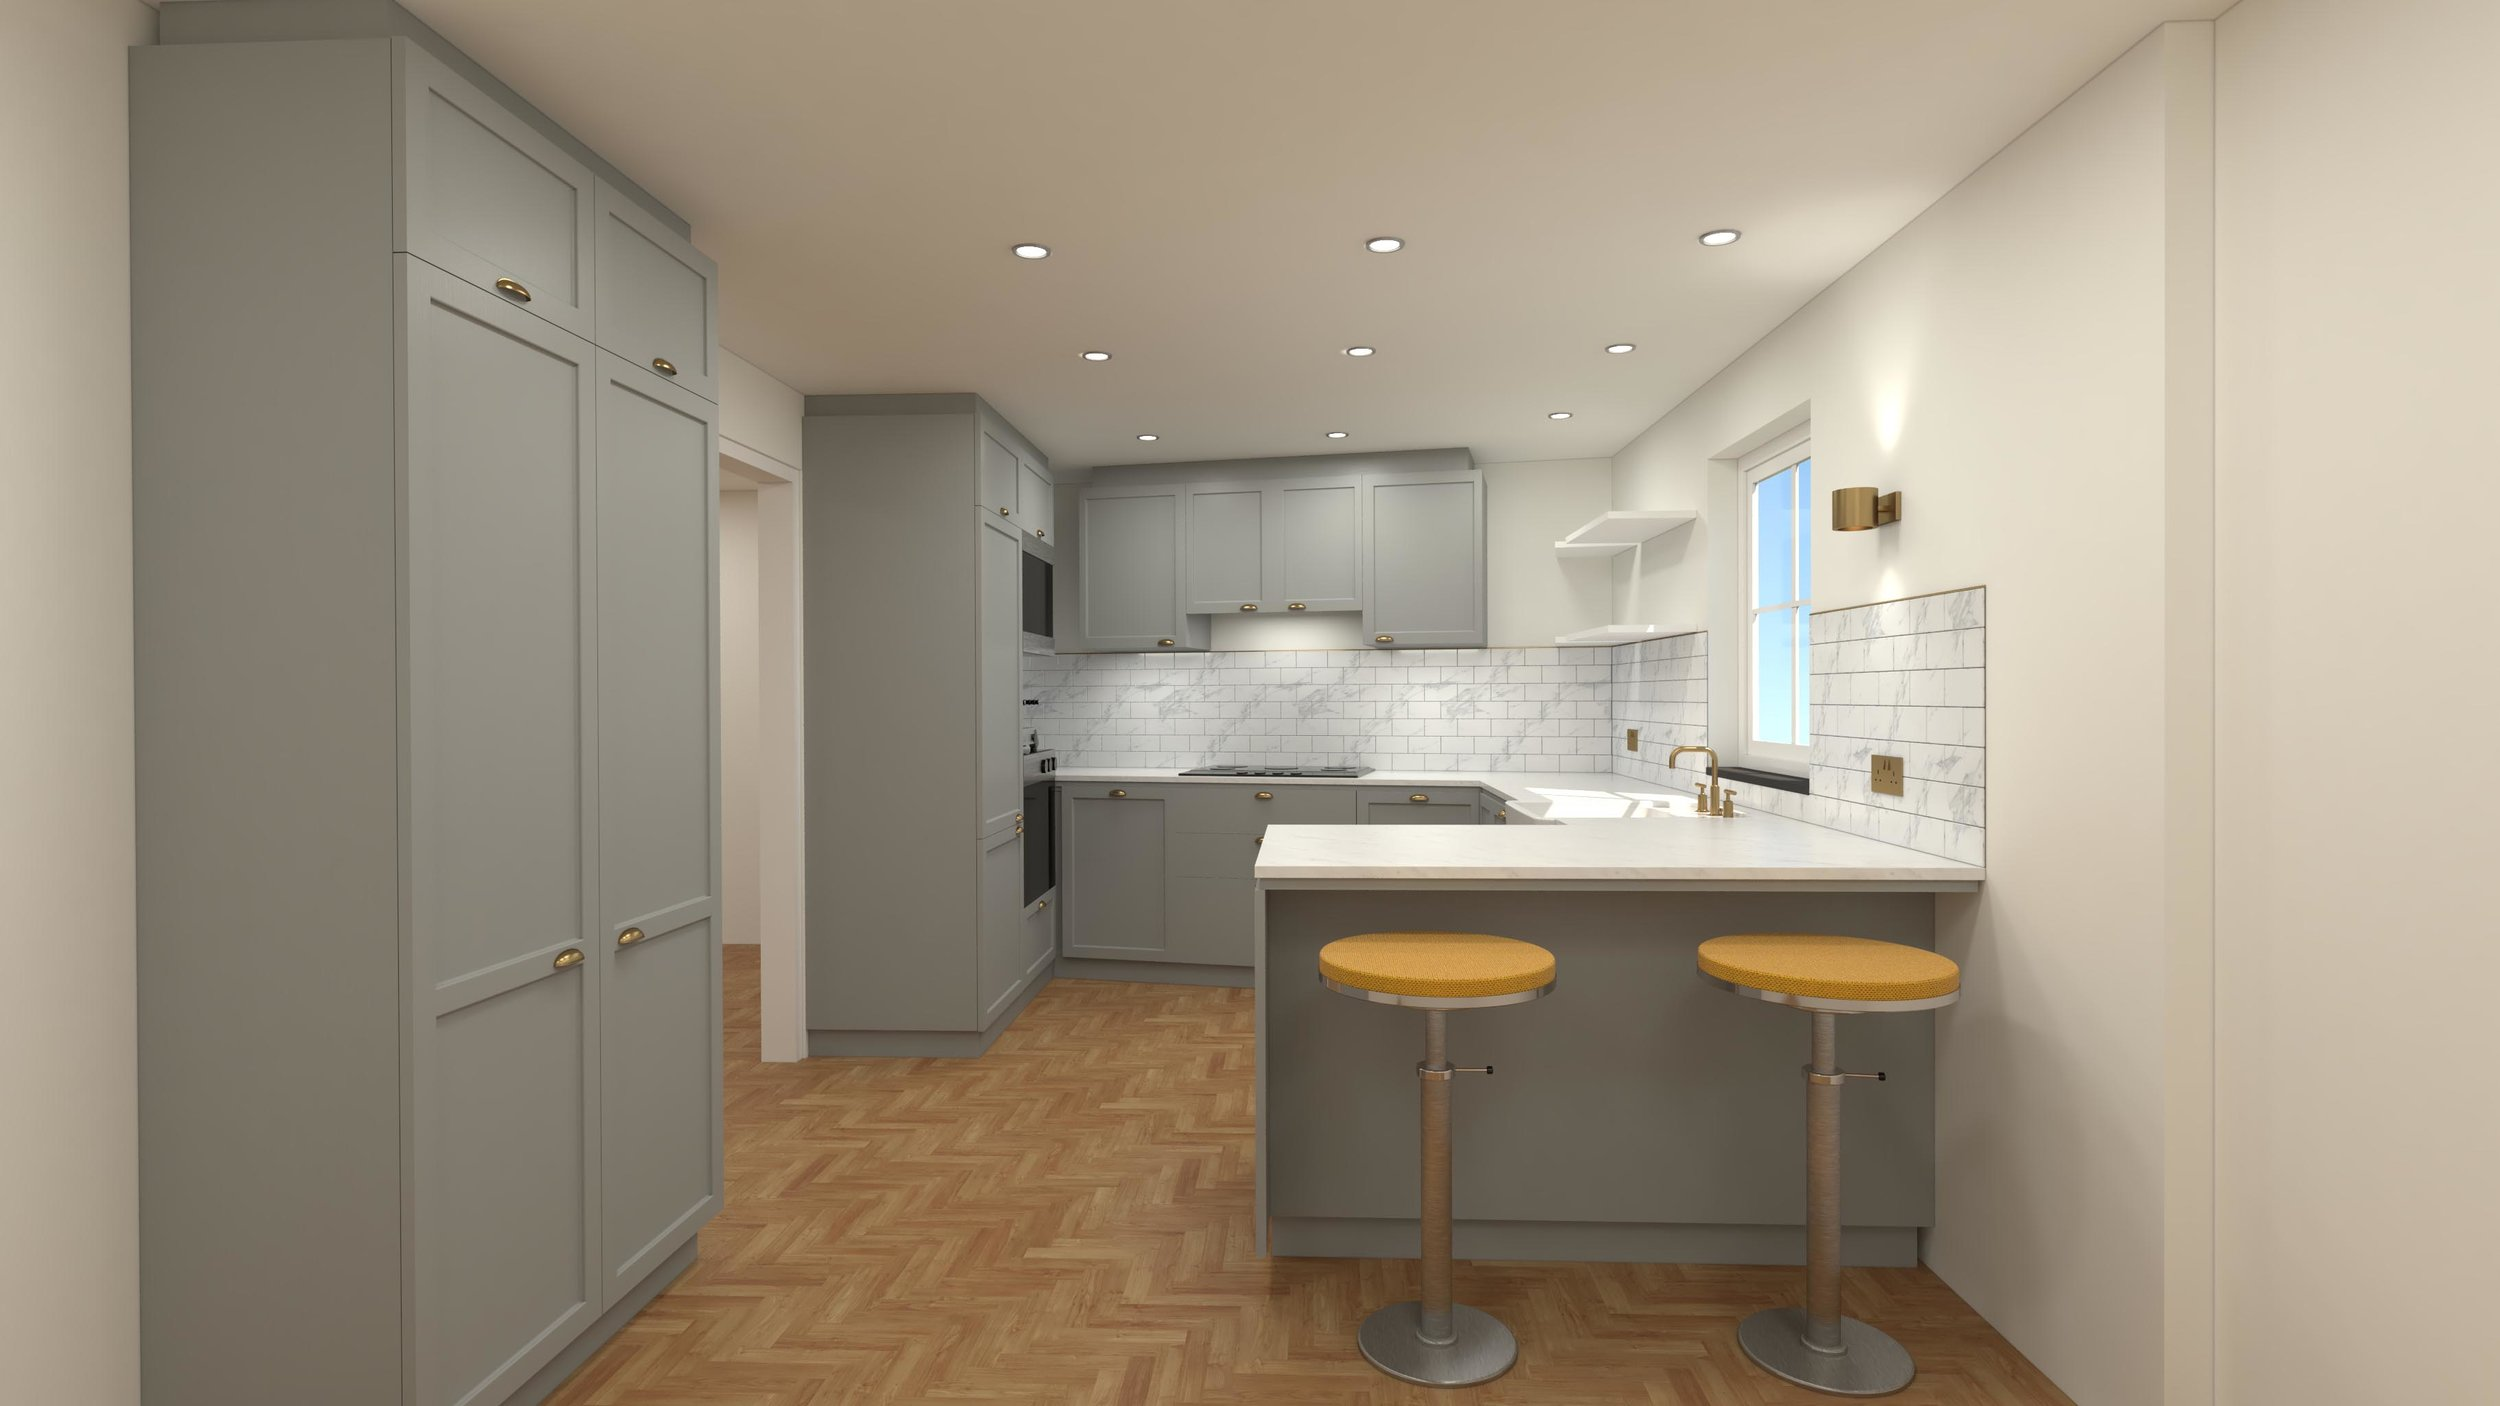 Kitchen Interior1.jpg